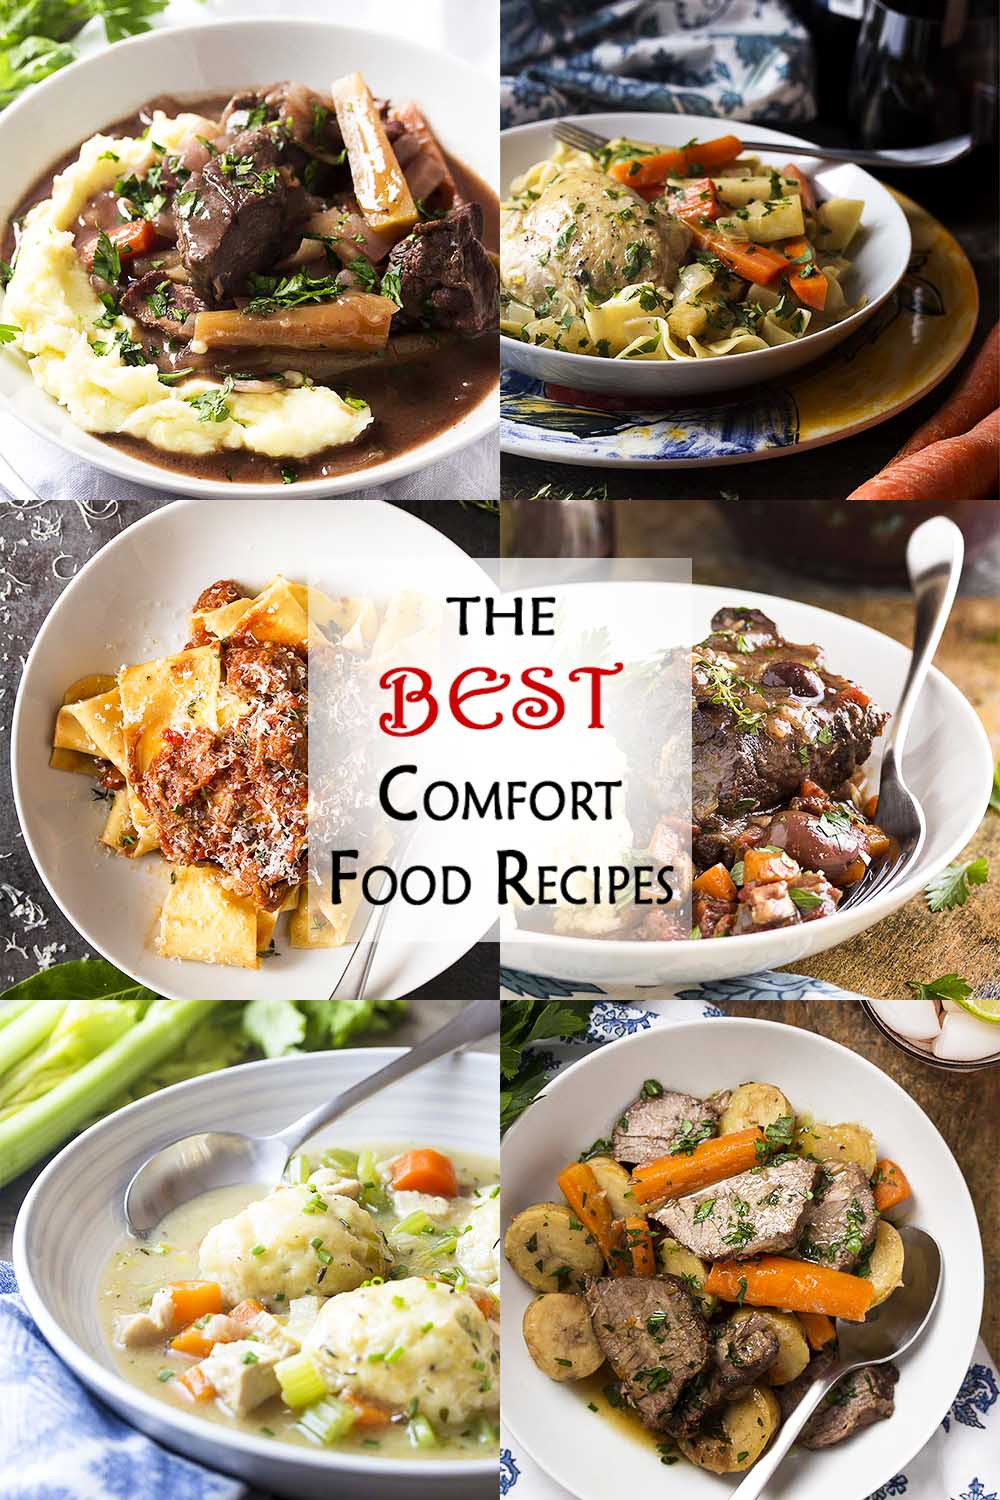 Long collage of dinner recipes with text overlay - The Best Comfort Food Recipes.